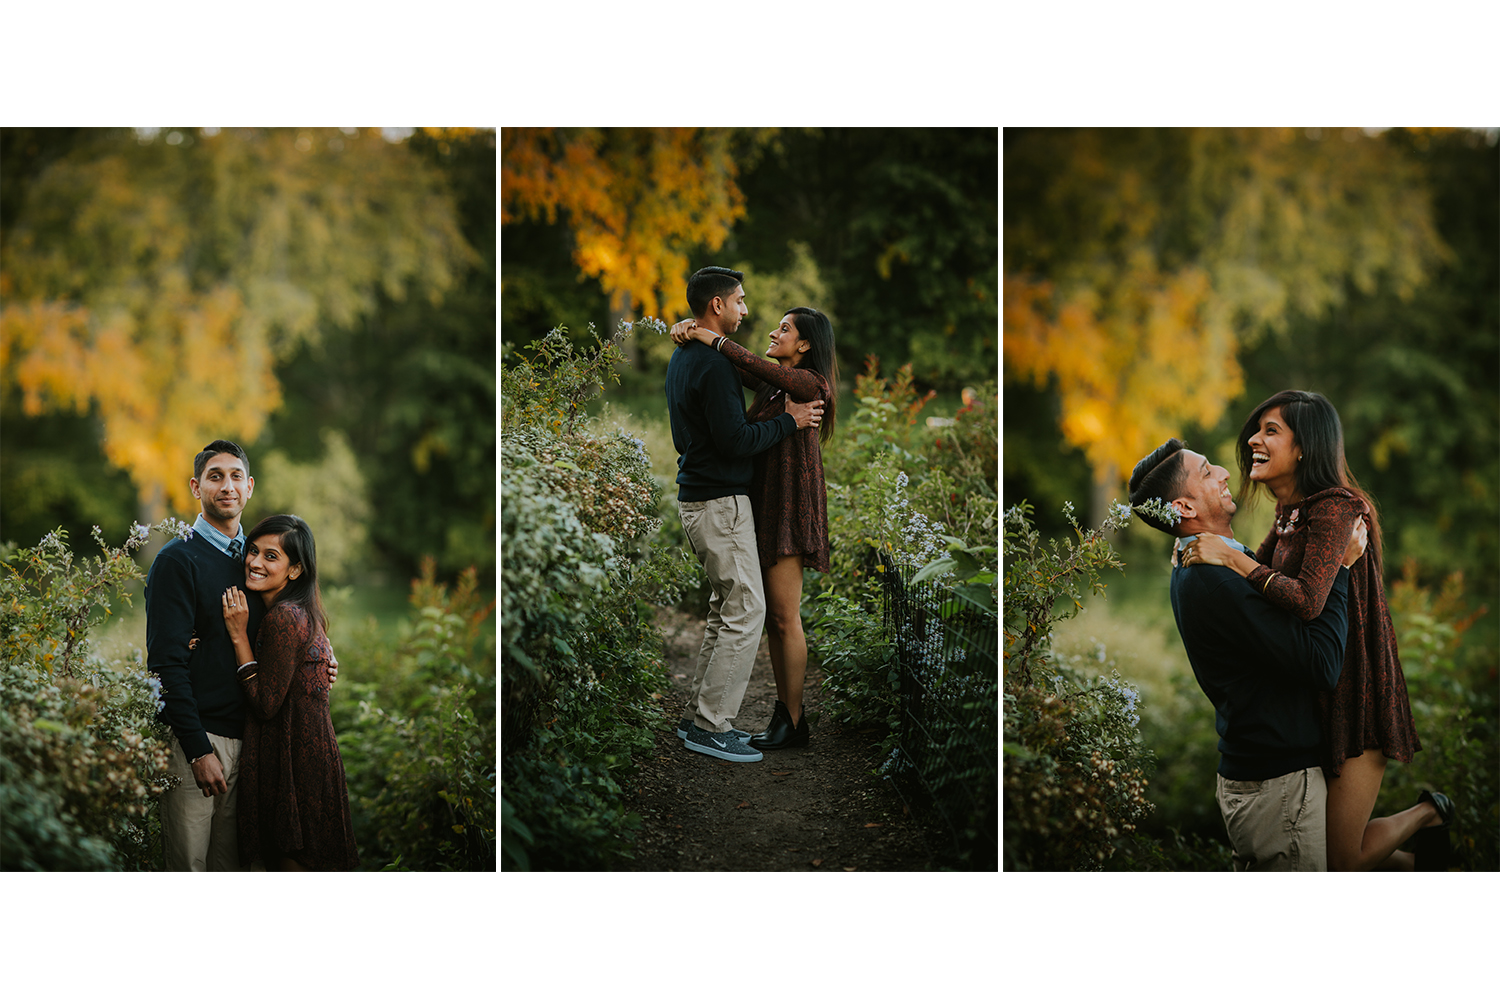 South_Asian_Wedding_Photography_Engagement_Session_010.jpg